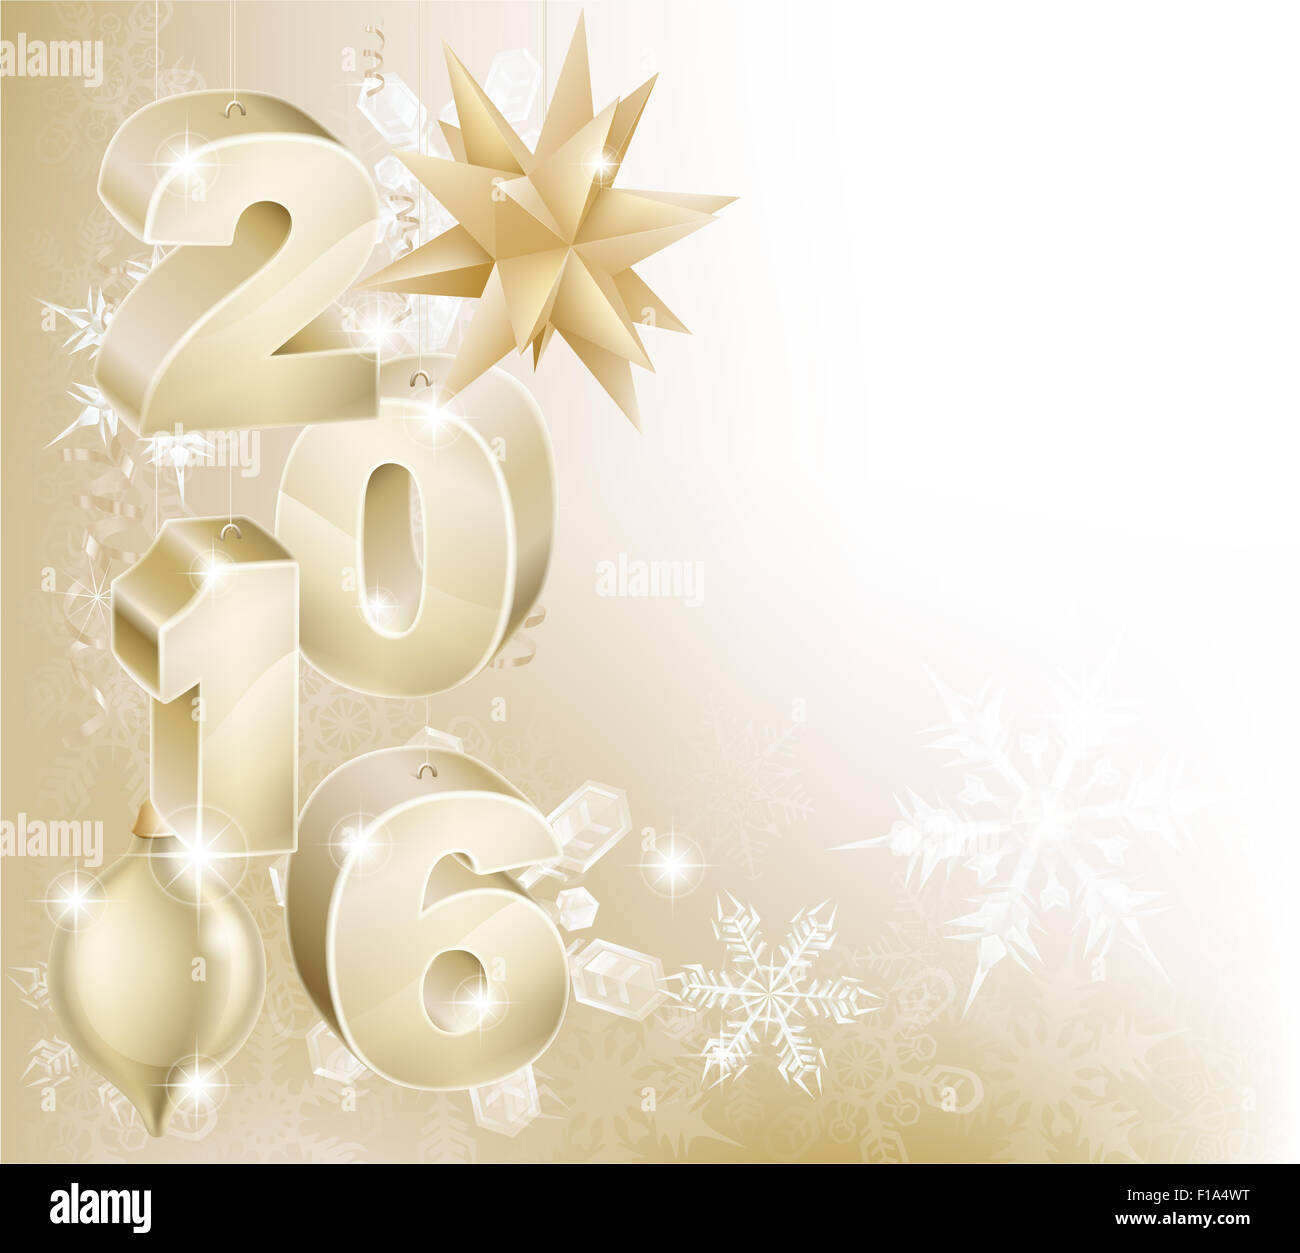 Gold 2016 and bauble decorations abstract snowflakes Christmas or New Year design background. - Stock Image